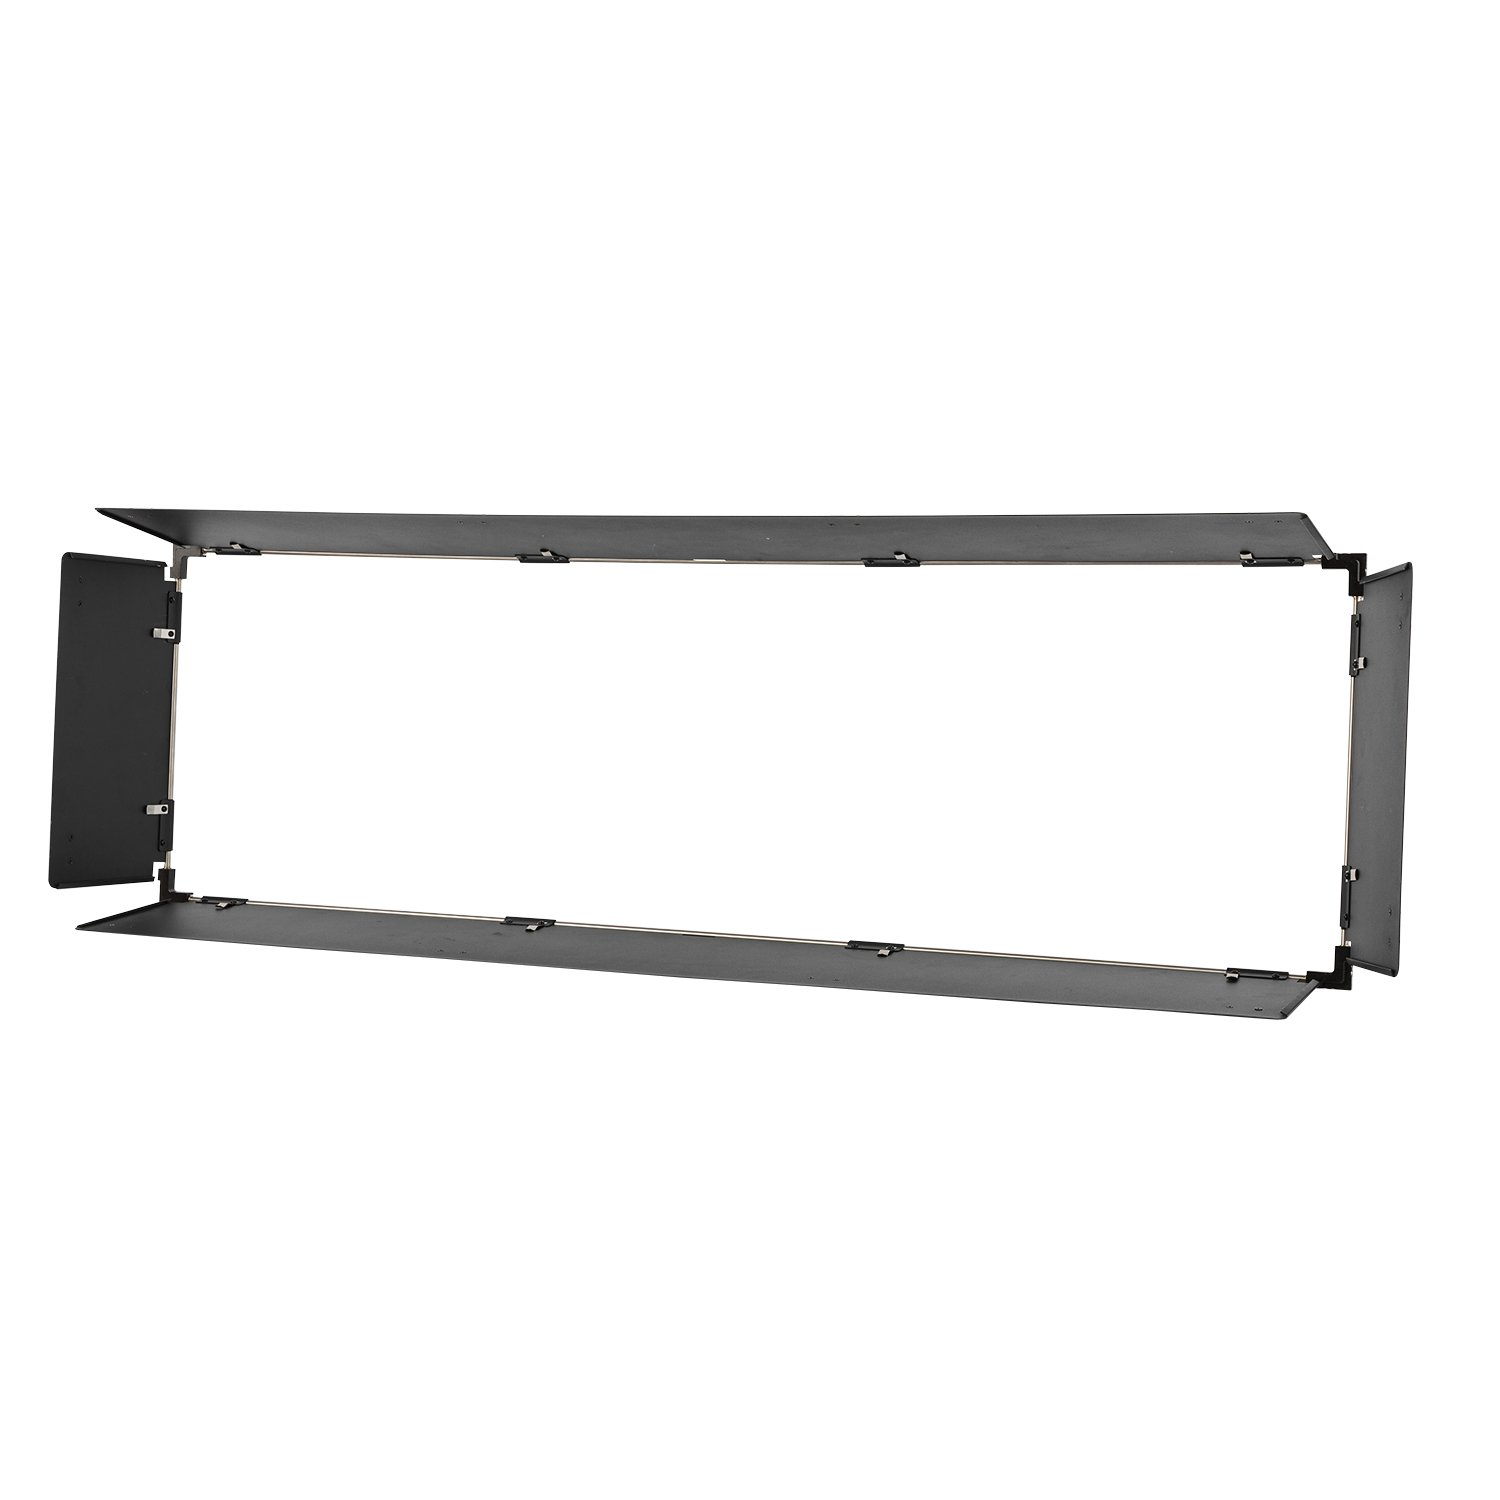 Ikan LBD30 Barn Doors for Lyra 1 x 3 Studio Soft Light, Black by Ikan